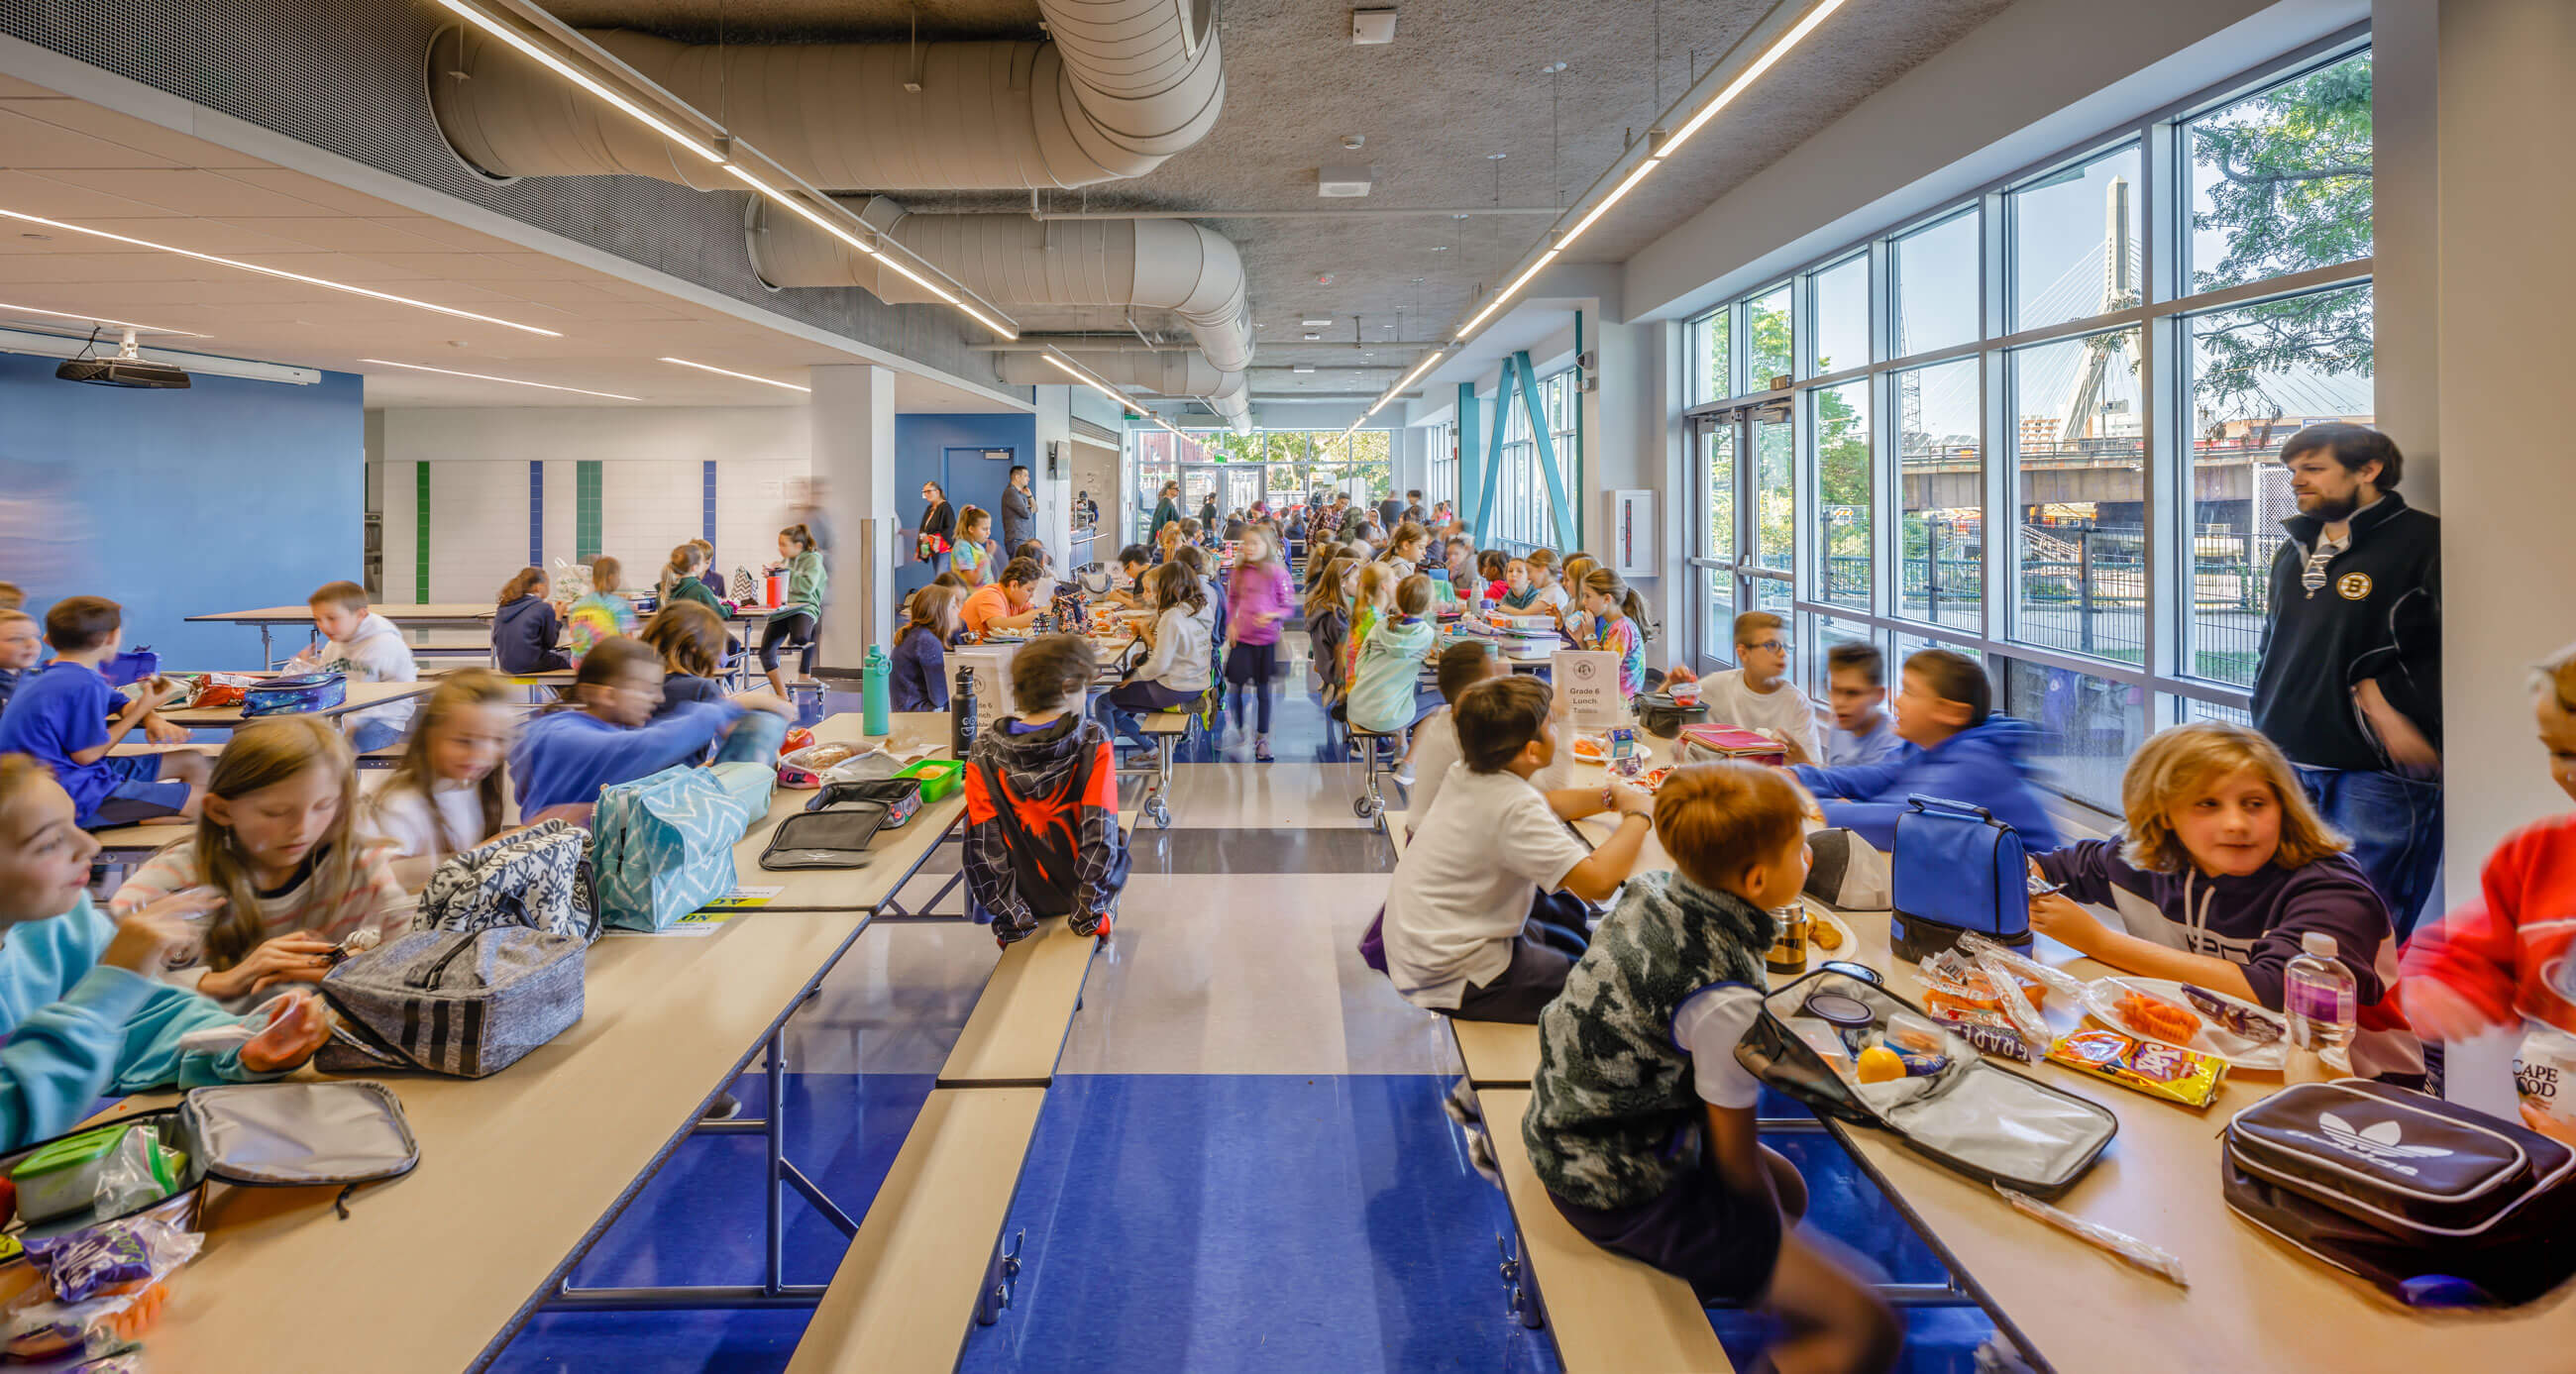 Many kids sitting at long cafeteria tables framed by blue floors, large windows, and exposed mechanical systems on the ceiling.